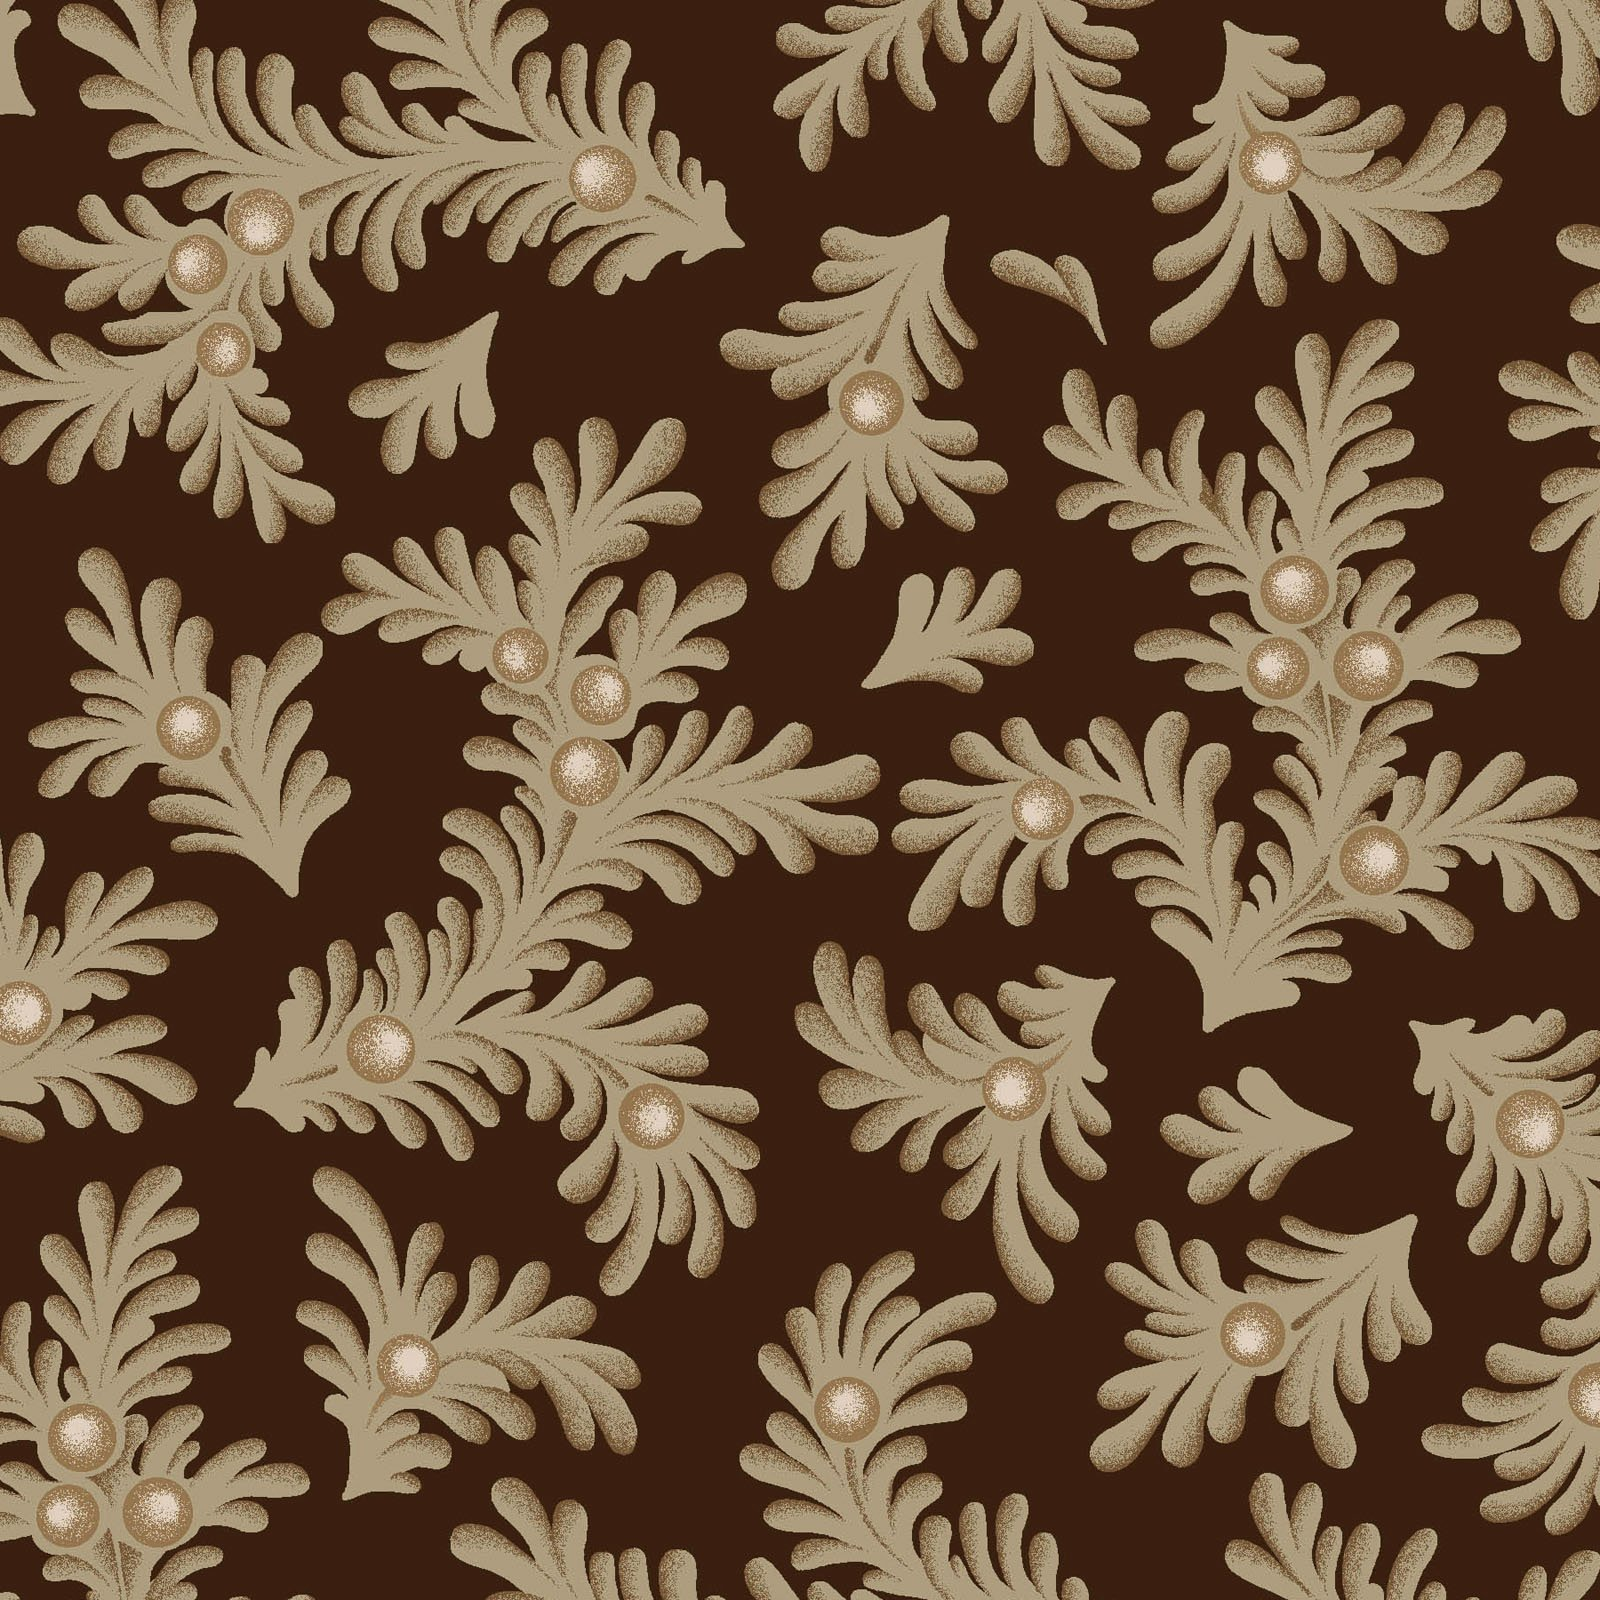 Ruby - Feathered Leaves - Espresso